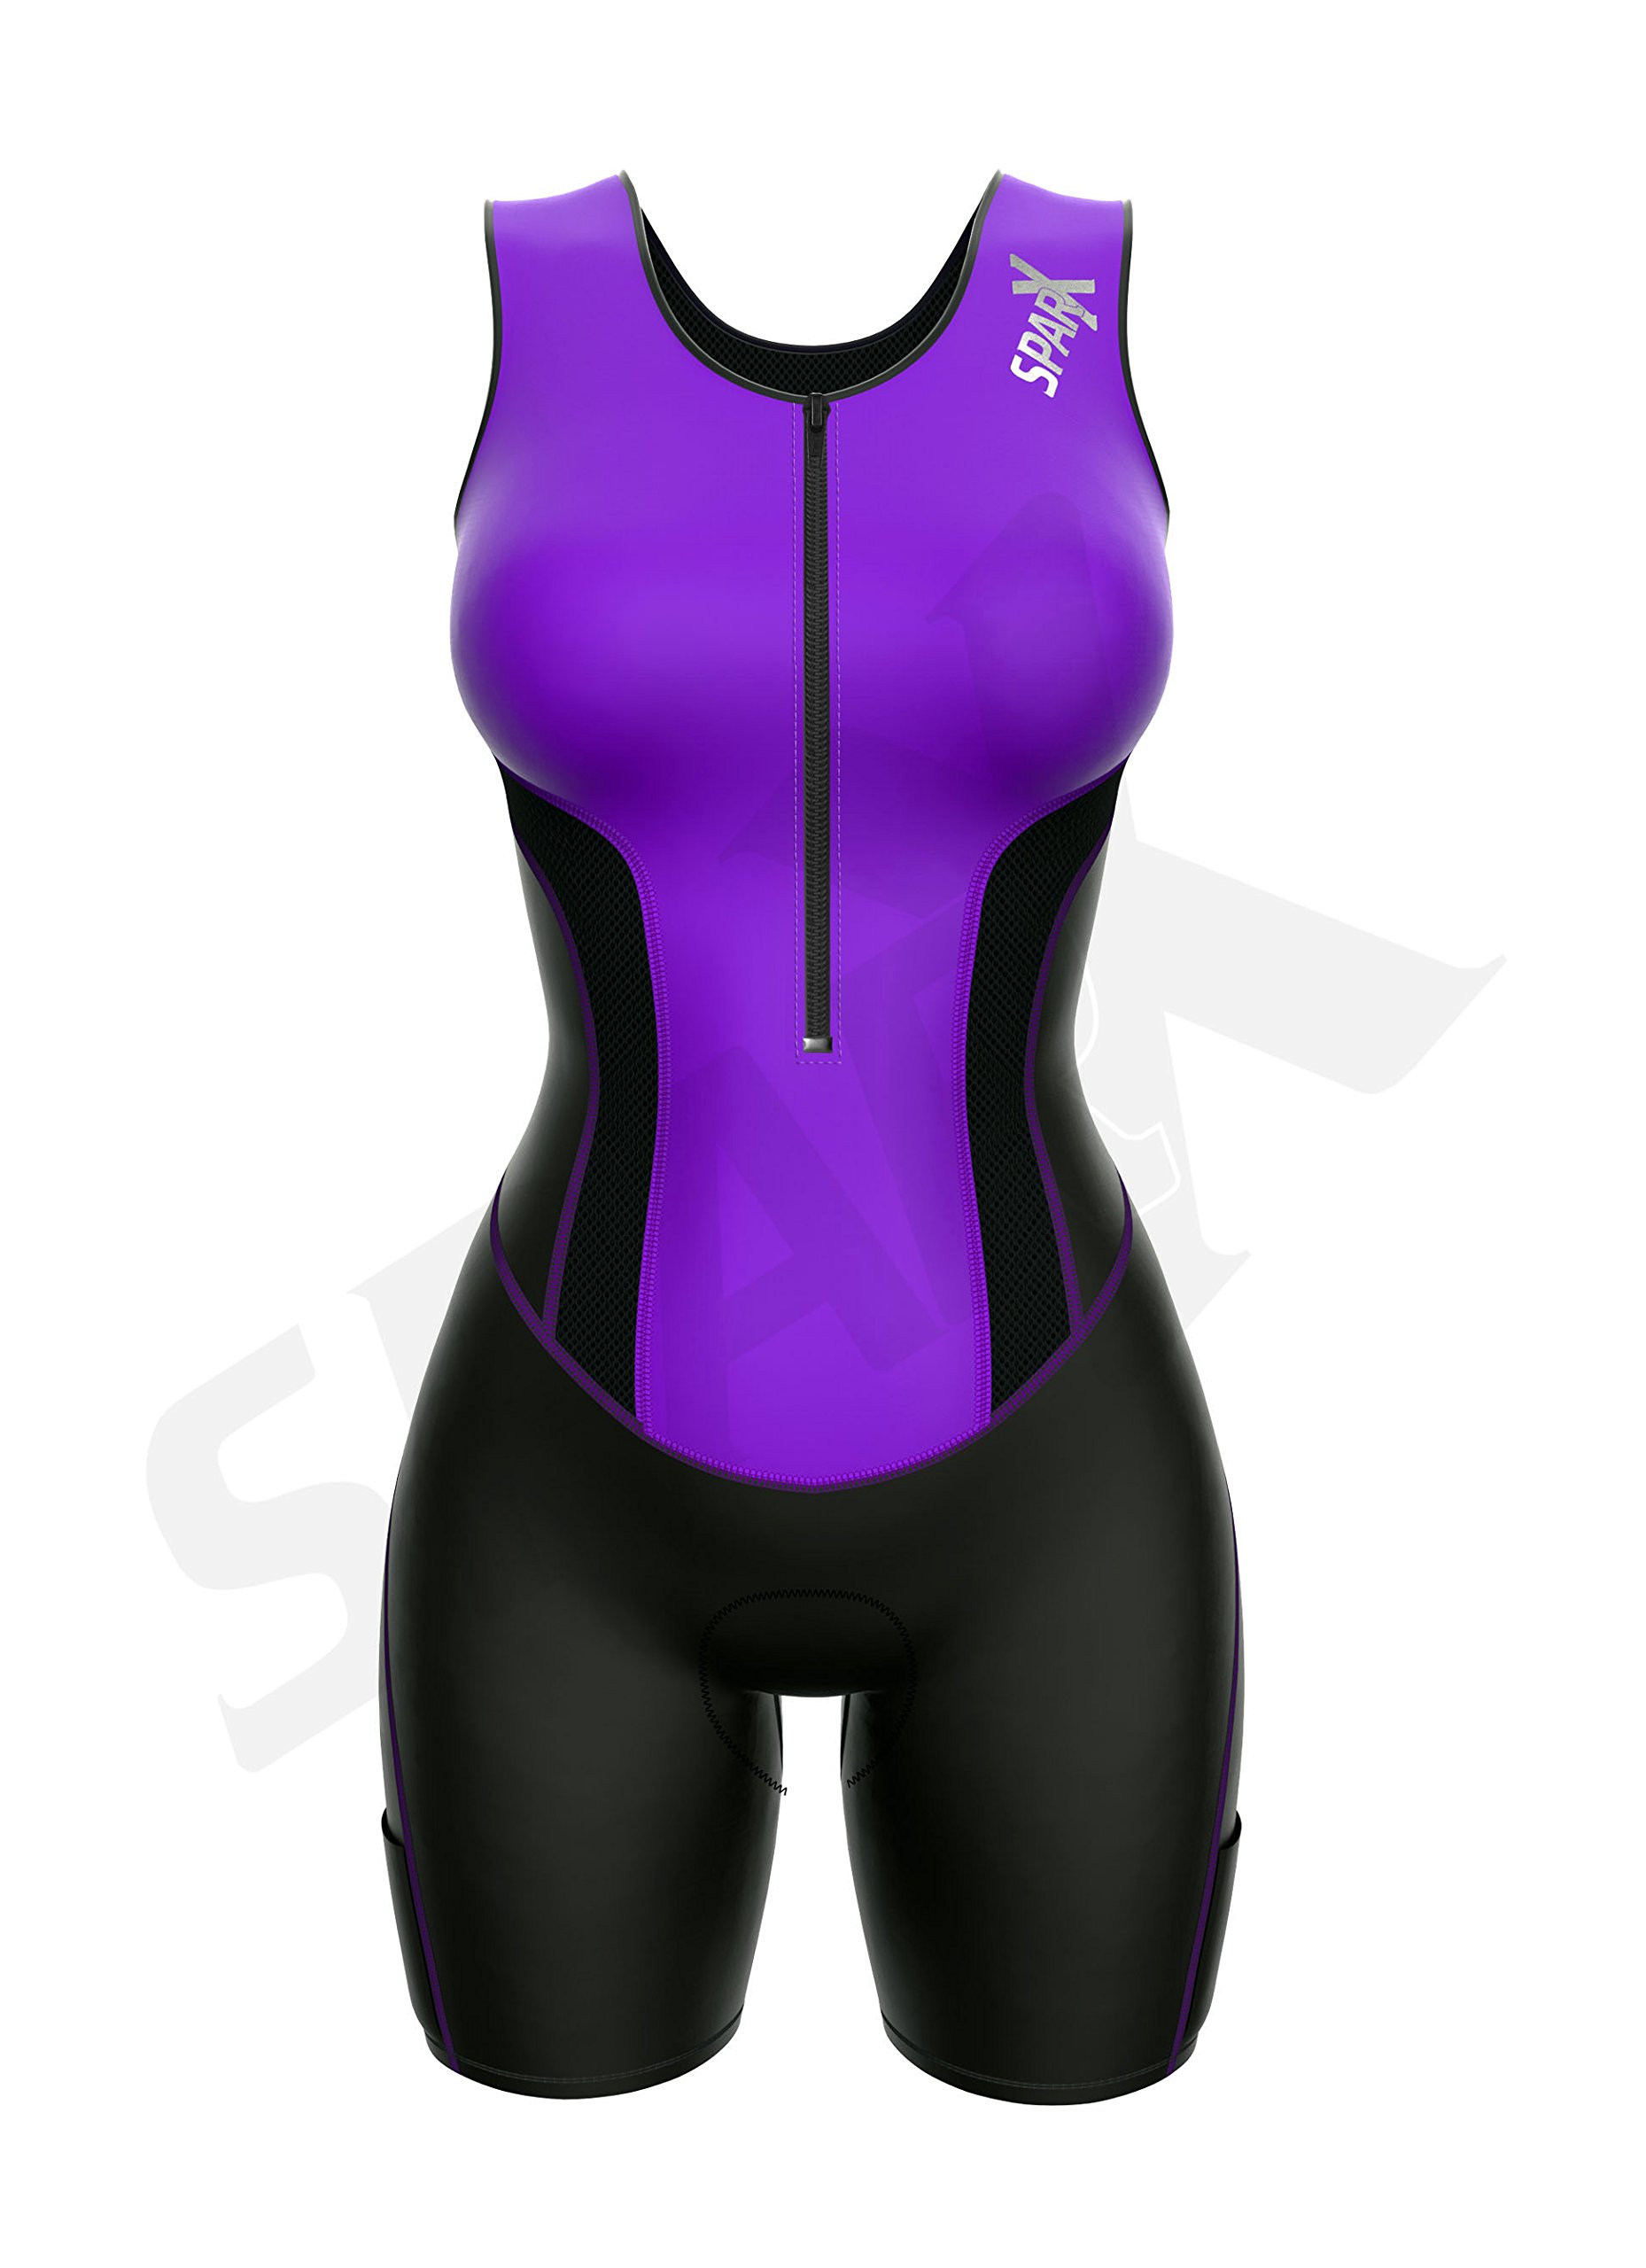 Sparx Women Triathlon Suit Tri Short Racing Cycling Swim Run (Small, Purple) by Sparx Sports (Image #3)